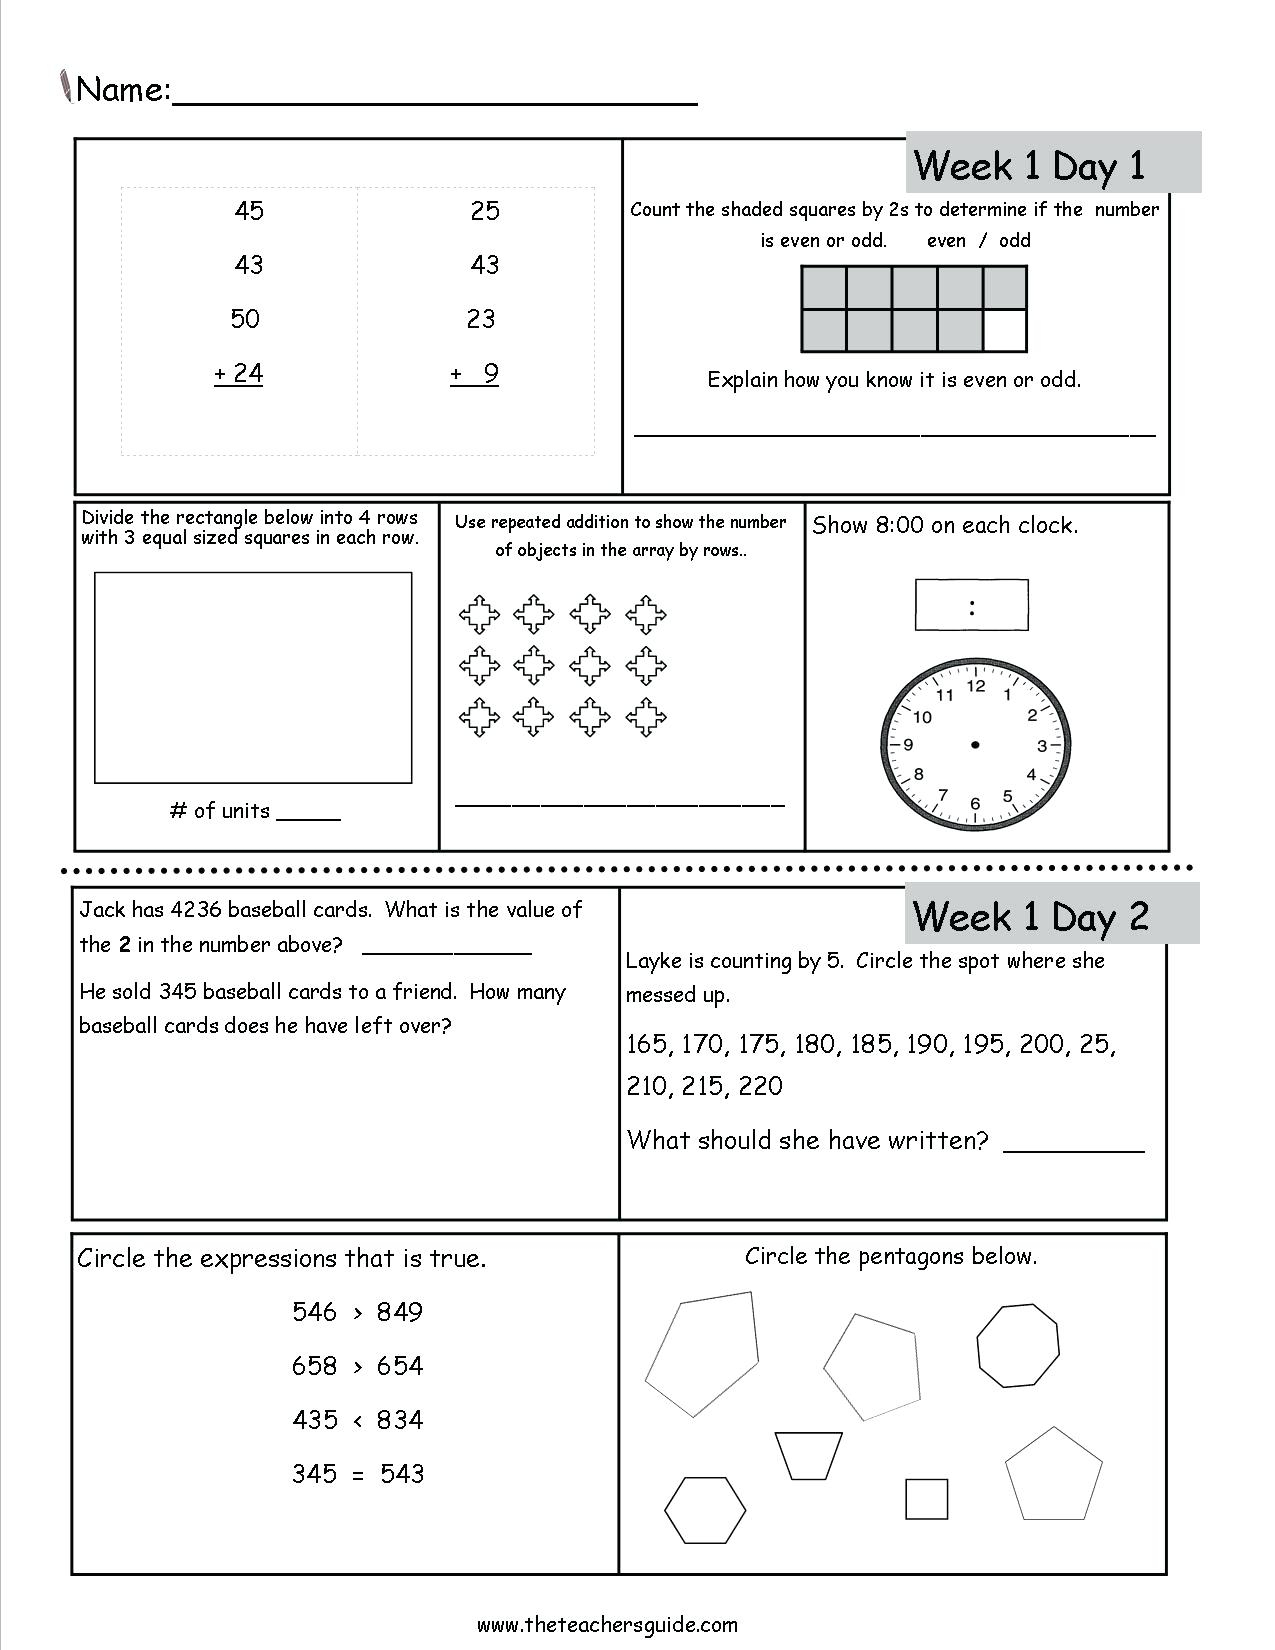 Math Worksheet: Printable Multiplication Coloring Sheets Geometry | 6Th Grade Math And Reading Printable Worksheets